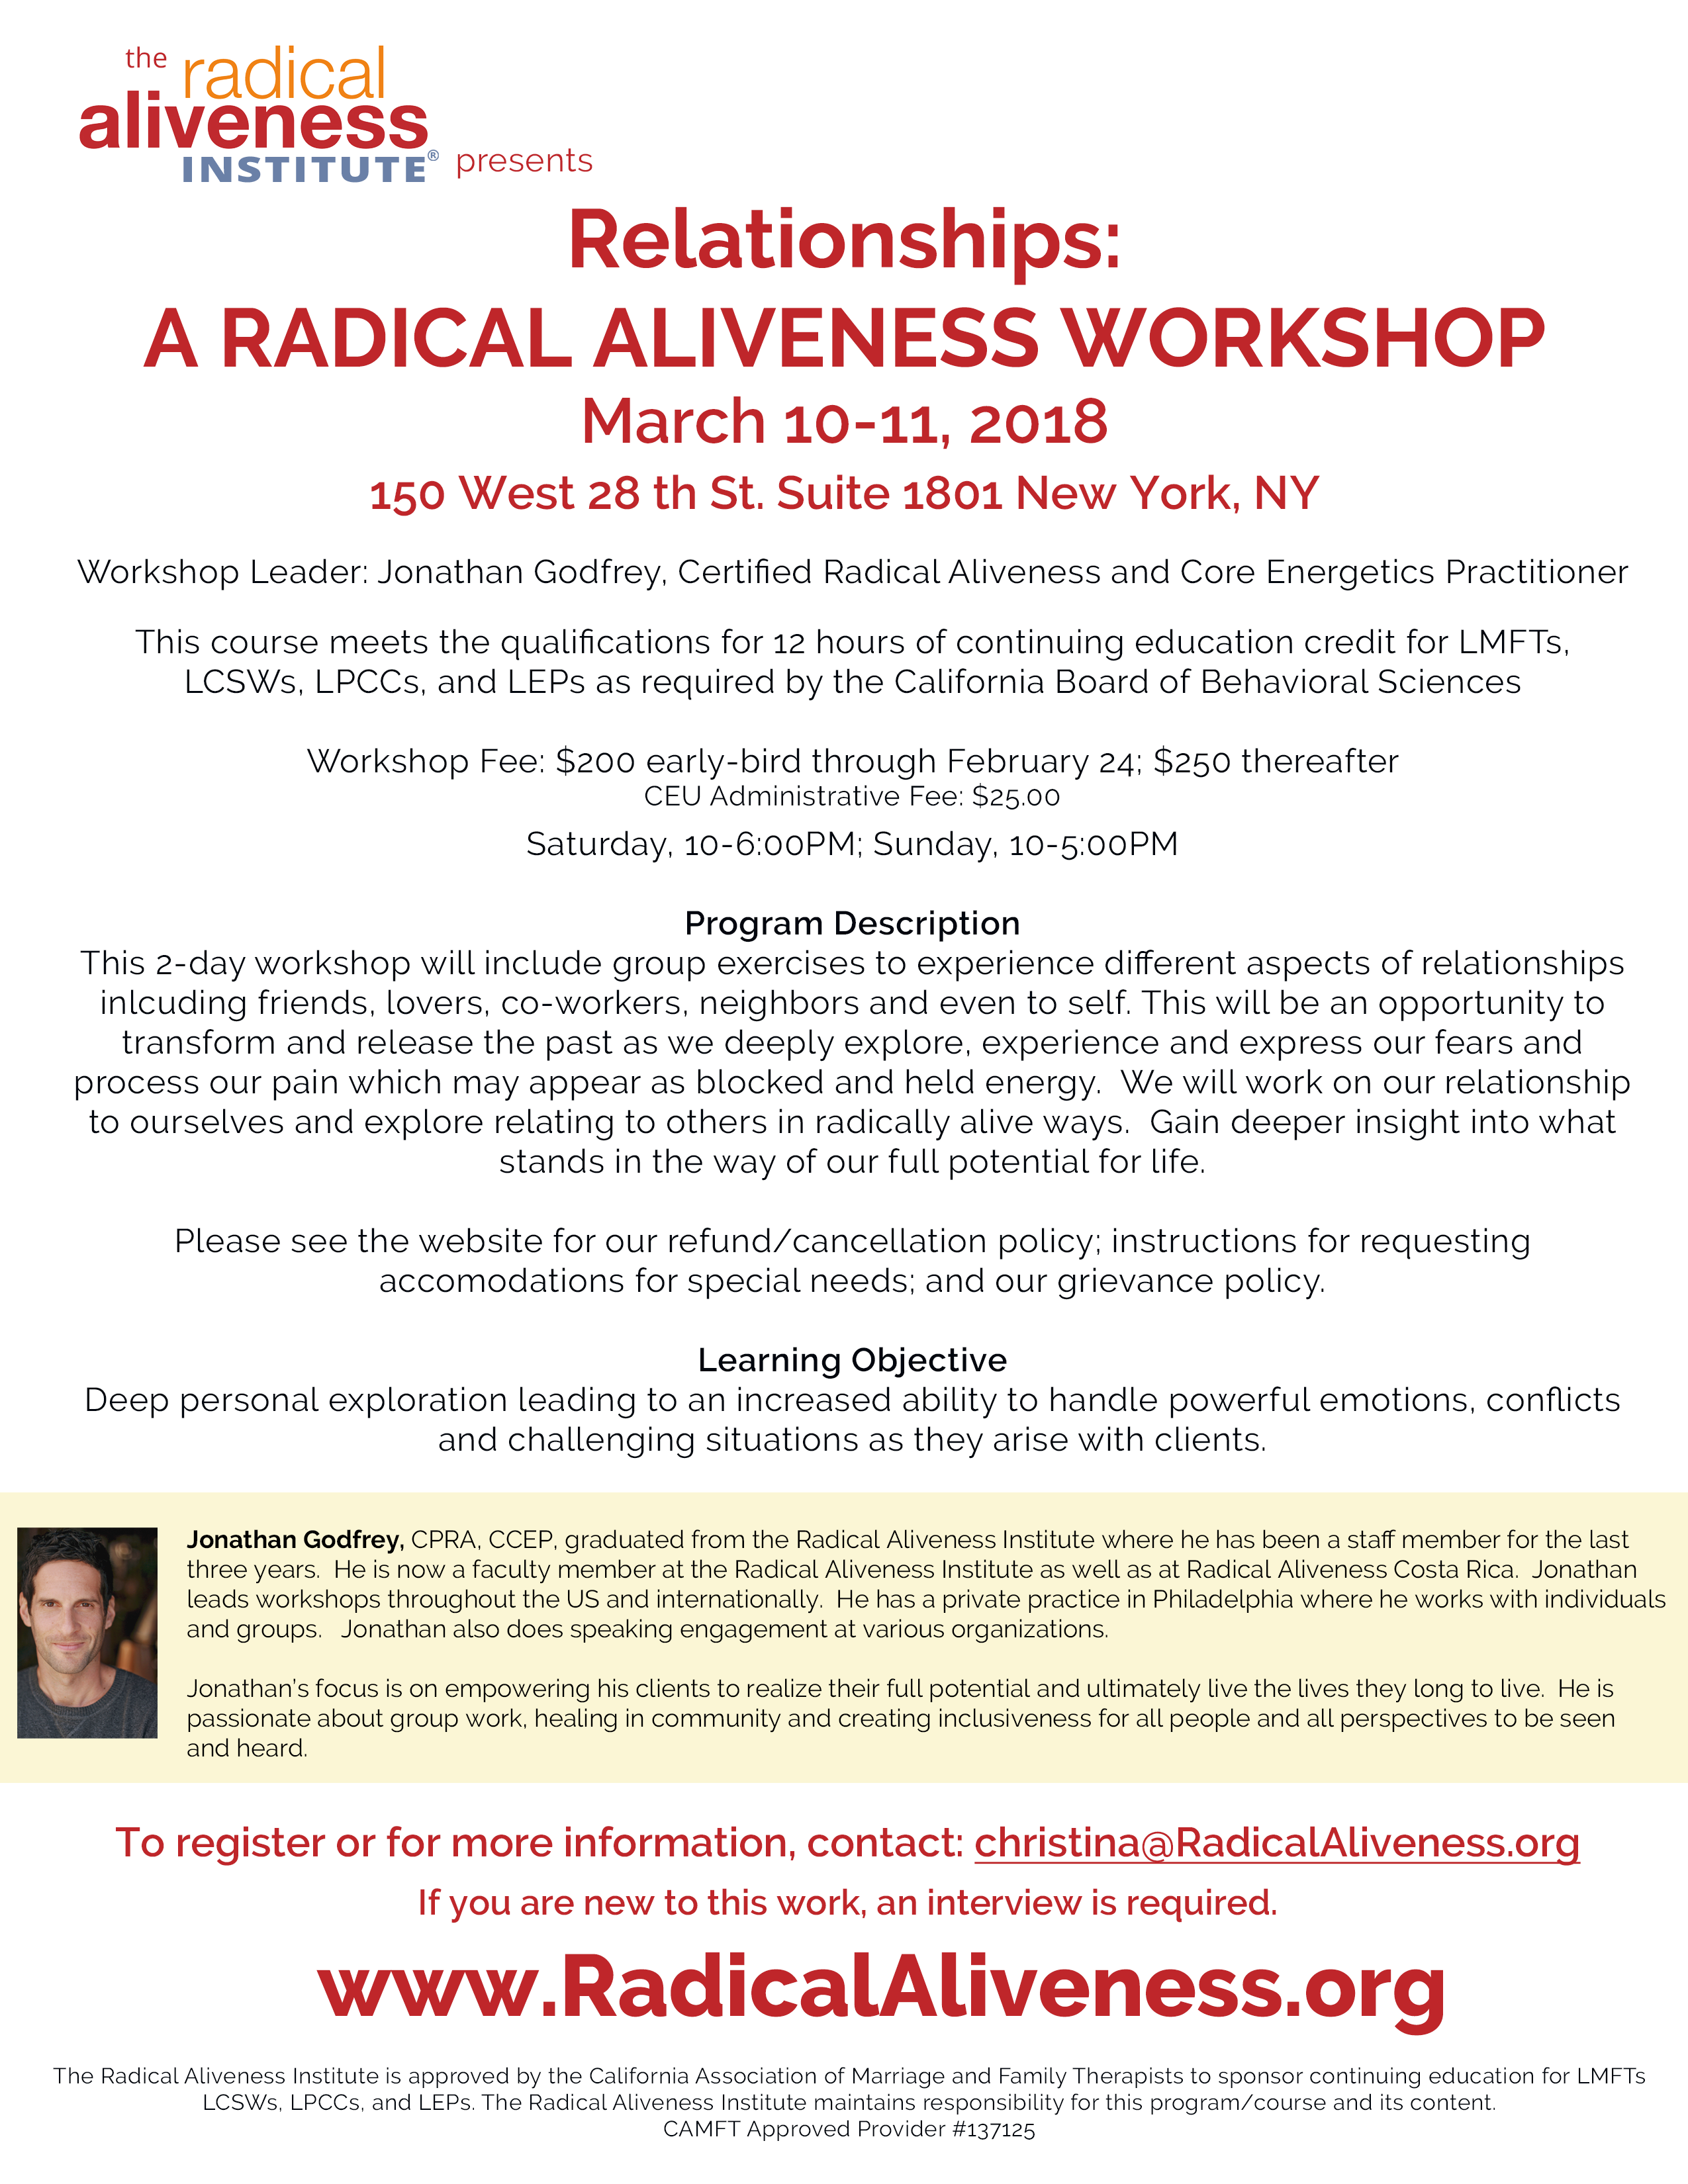 Contact us radical aliveness institute relationships a radical aliveness workshop nyc new york new york united 1betcityfo Images